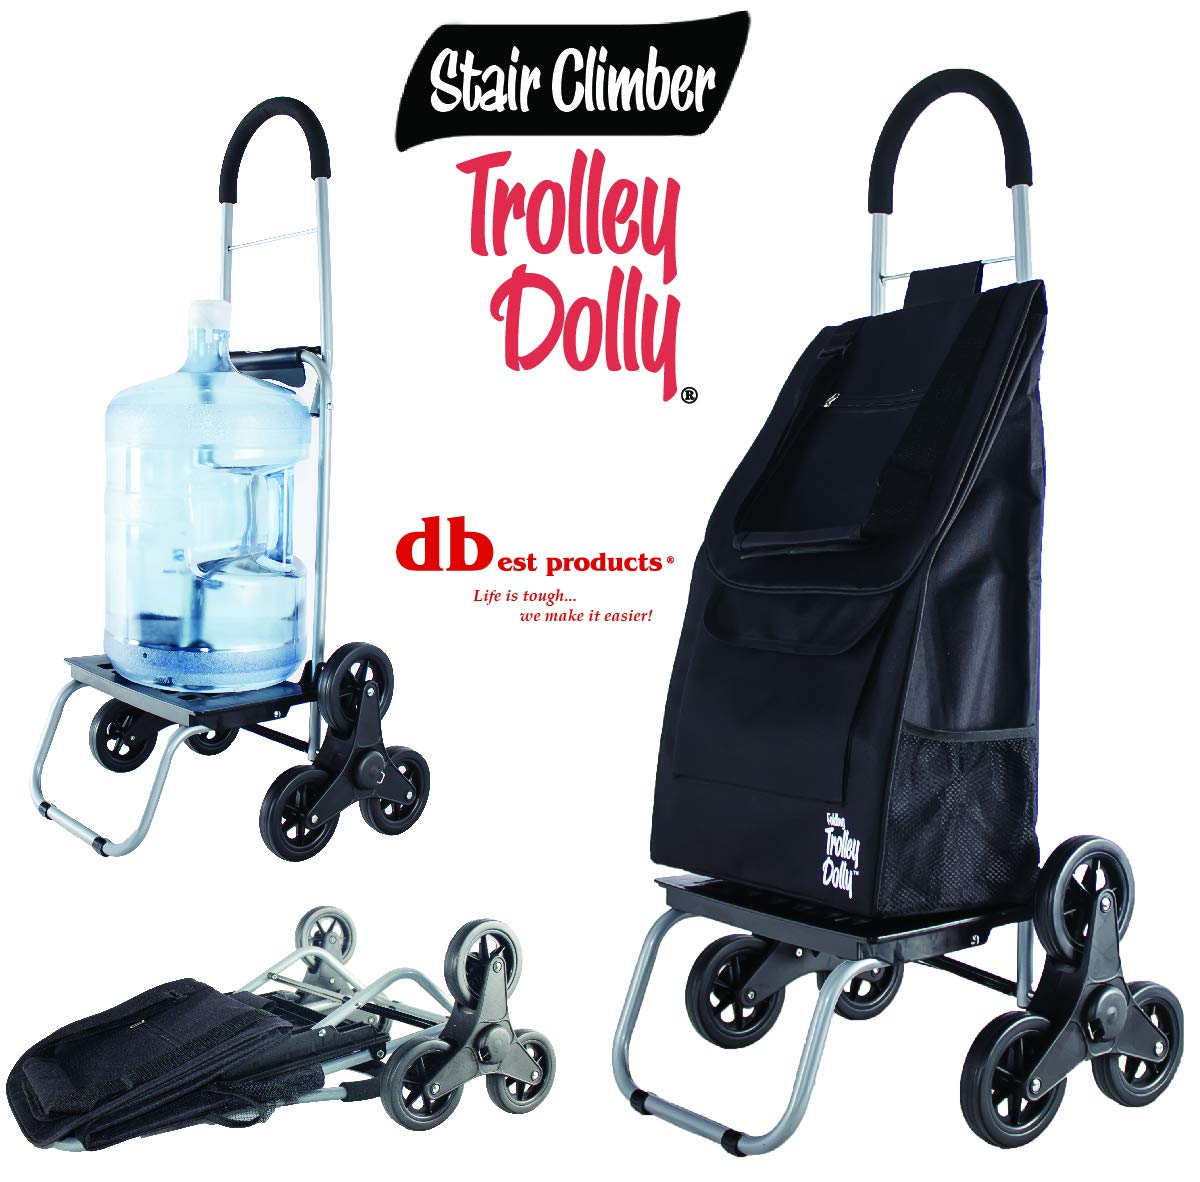 dbest products Stair Climber Trolley Dolly, BlackShopping Grocery Foldable Cart Condo Apartment